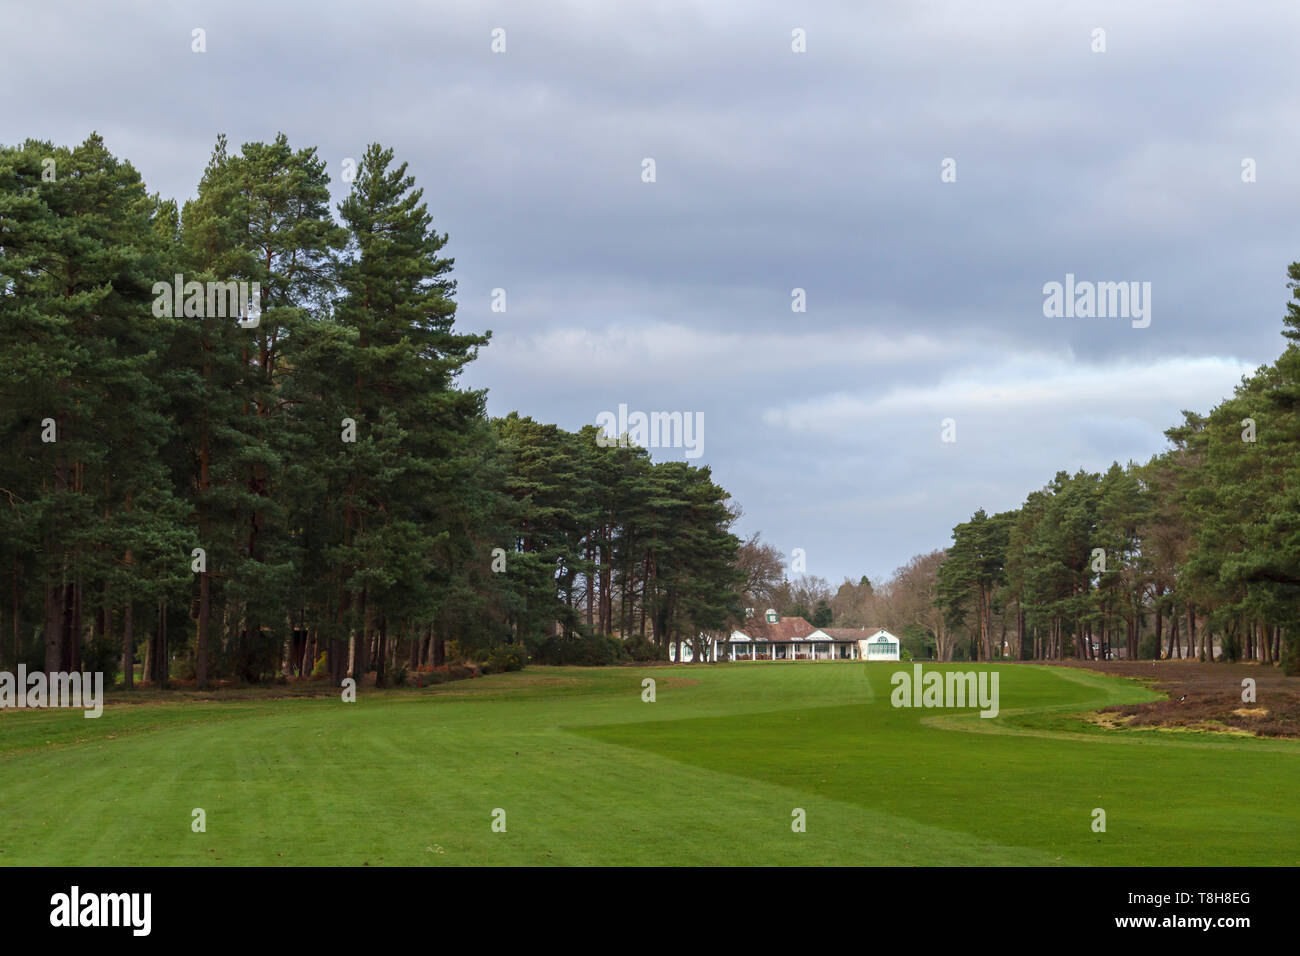 View of Woking Golf Club and the clubhouse in Hook Heath, Woking along the fairway on a cloudy day with overcast sky - Stock Image